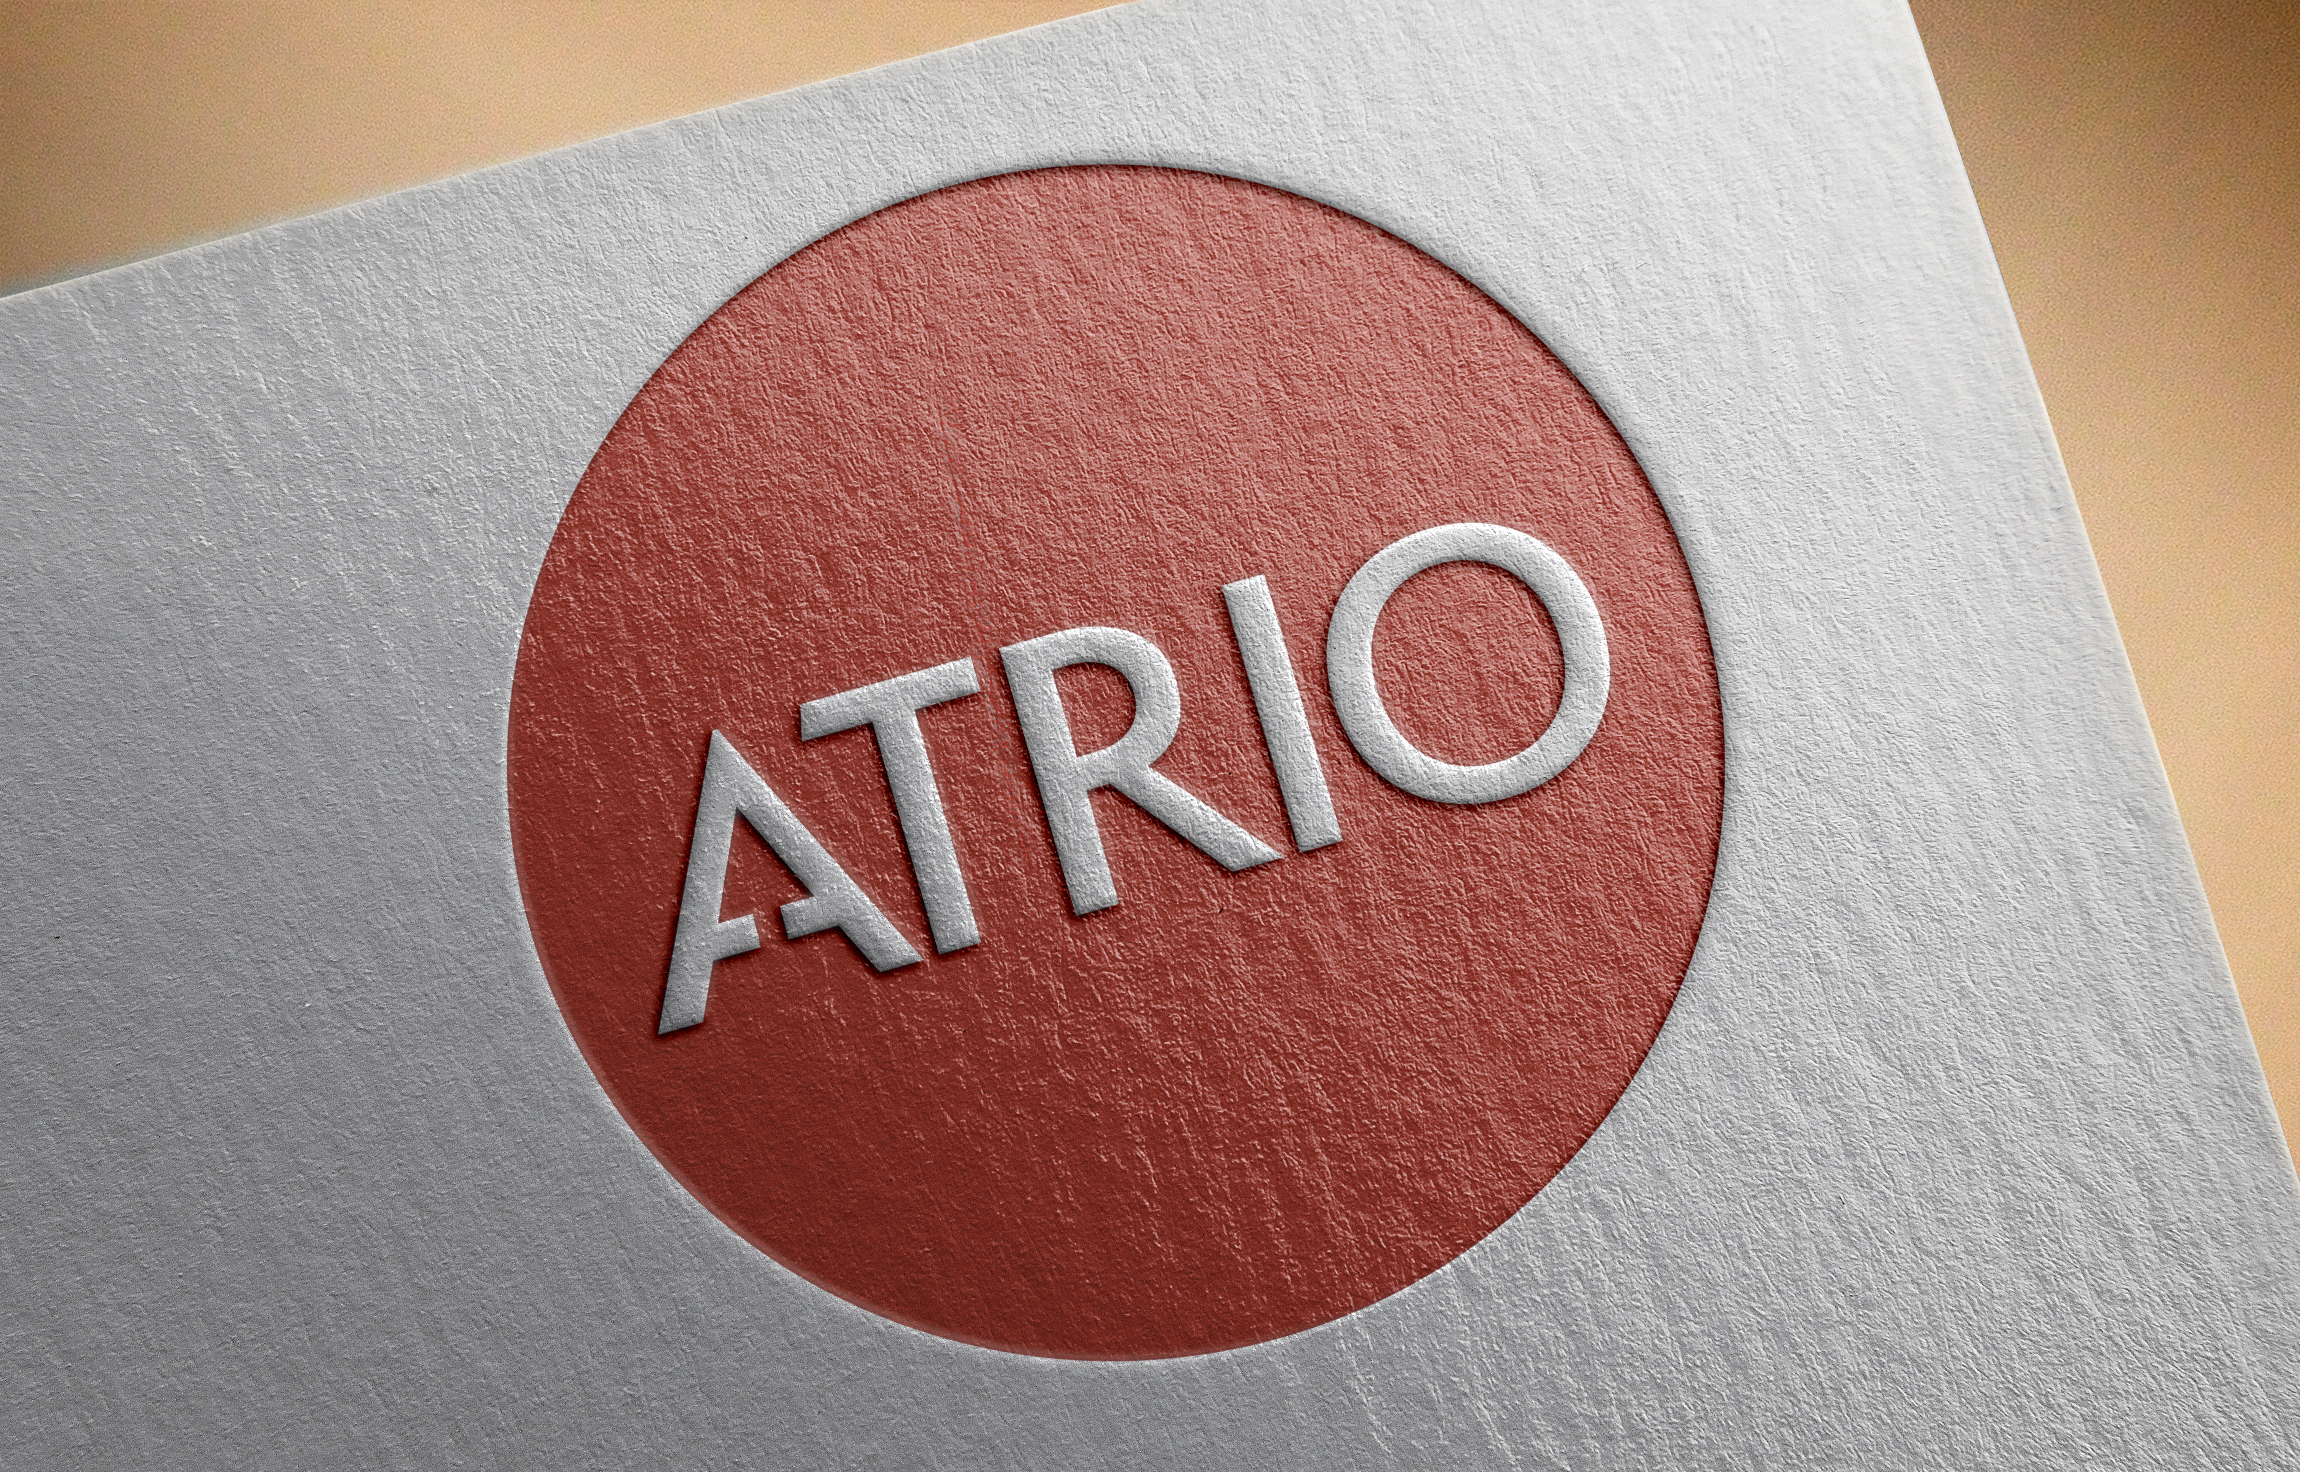 Atrio Branding Package Knoxville, TN